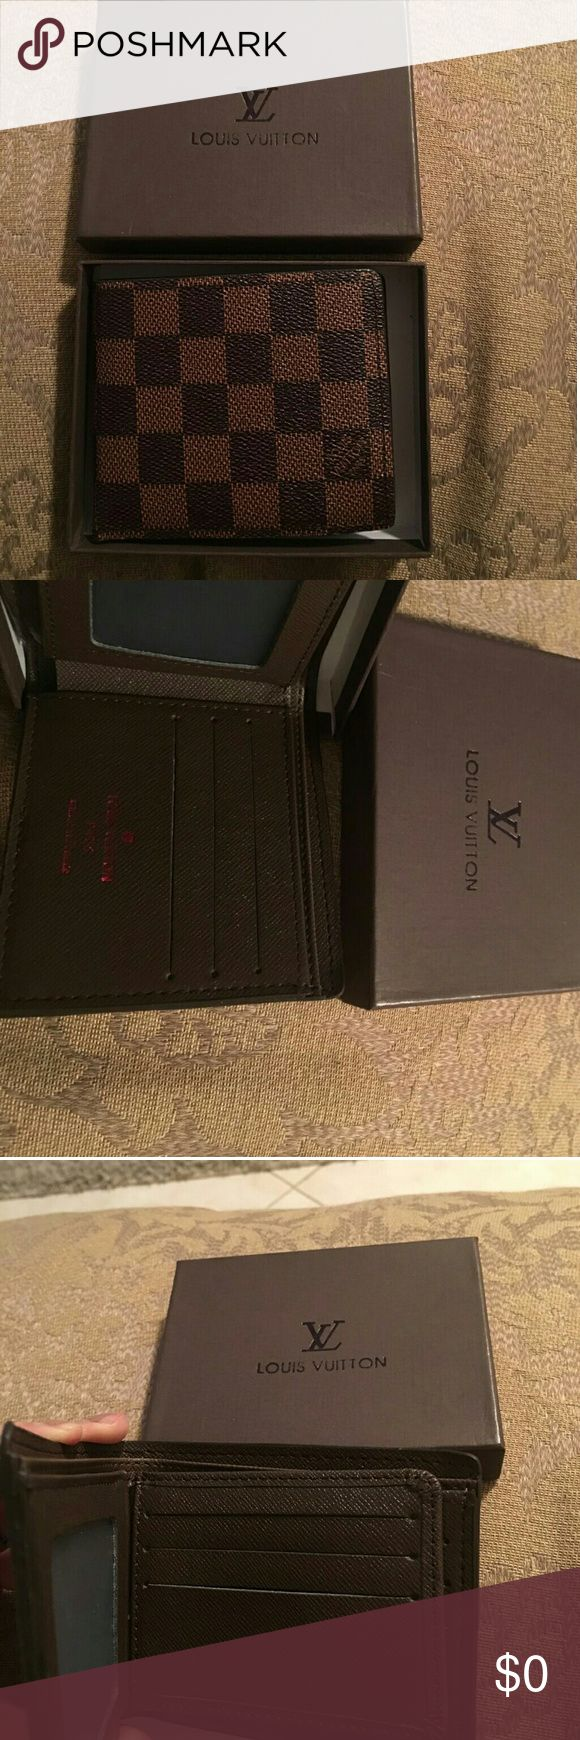 Wallet for men Wallet let me know if you are interested for men Louis Vuitton Accessories Watches